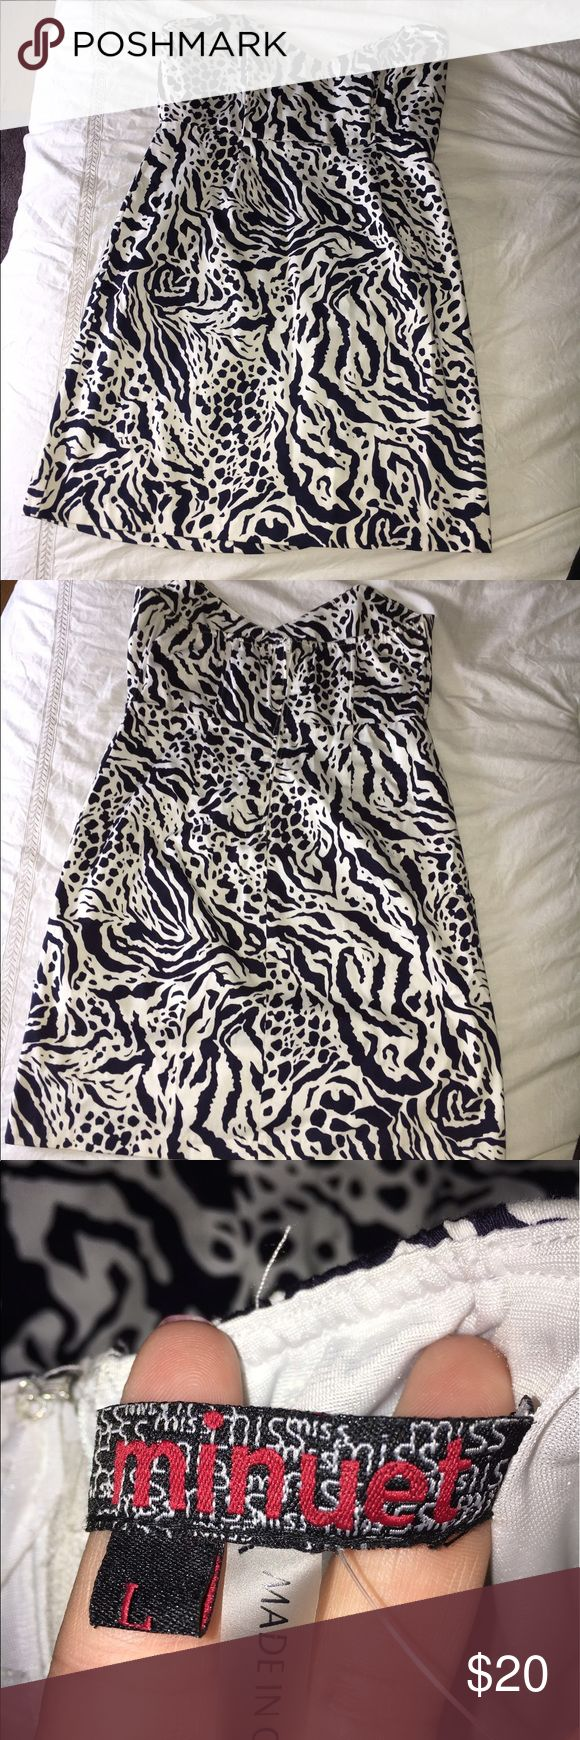 Animal Print Formal Dress Comfortable navy and white animal print formal dress. This was purchased from the website LuLu's and had very minor alterations done to it, but still didn't fit me right so it has never been worn except for me to try on. Tag has been removed. I am 5'2 and it hits a little below mid-thigh. There are 2 metal bars in the bust area to help hole the structure in the chest area Minuet Dresses Strapless